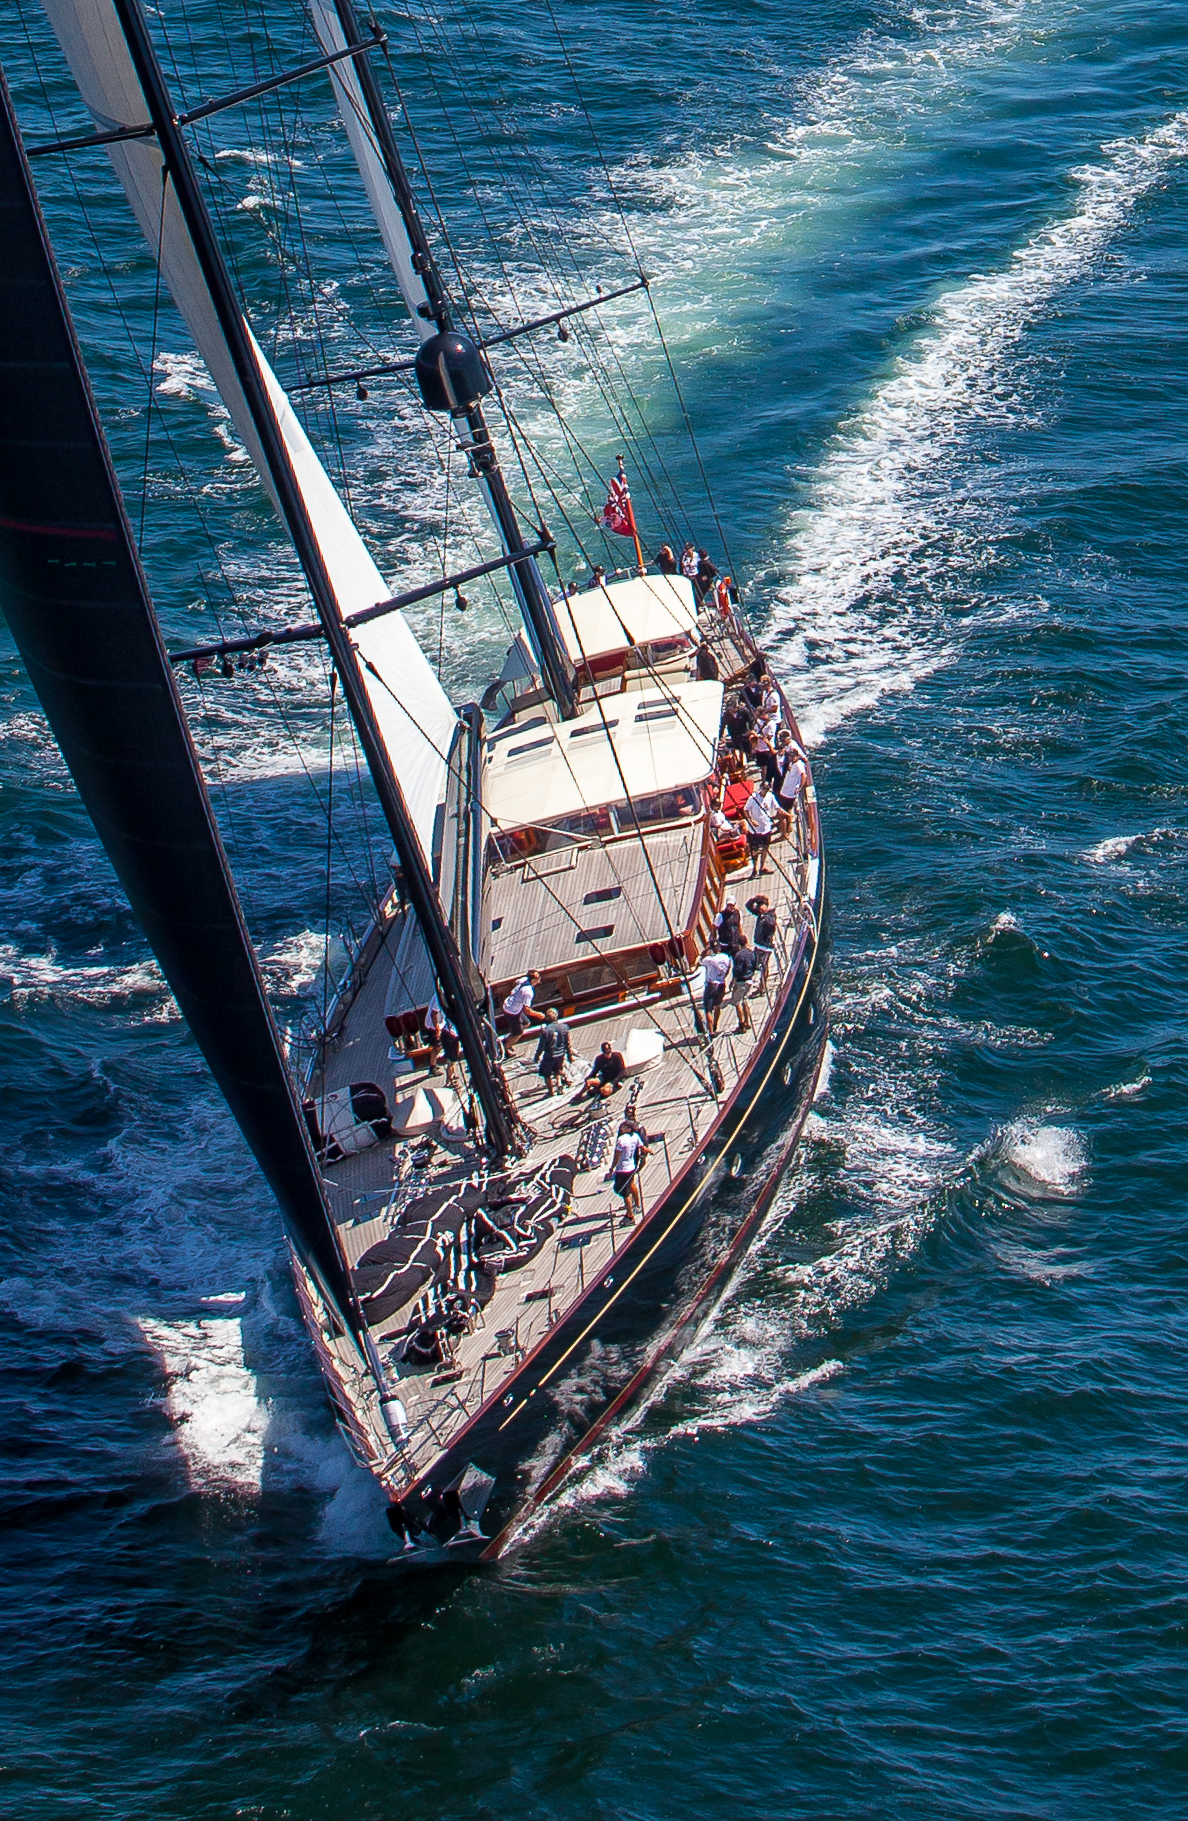 The S/Y Marie, under sail during the Shipyard Cup in Boothbay Harbor, Maine. Summer of 2013.